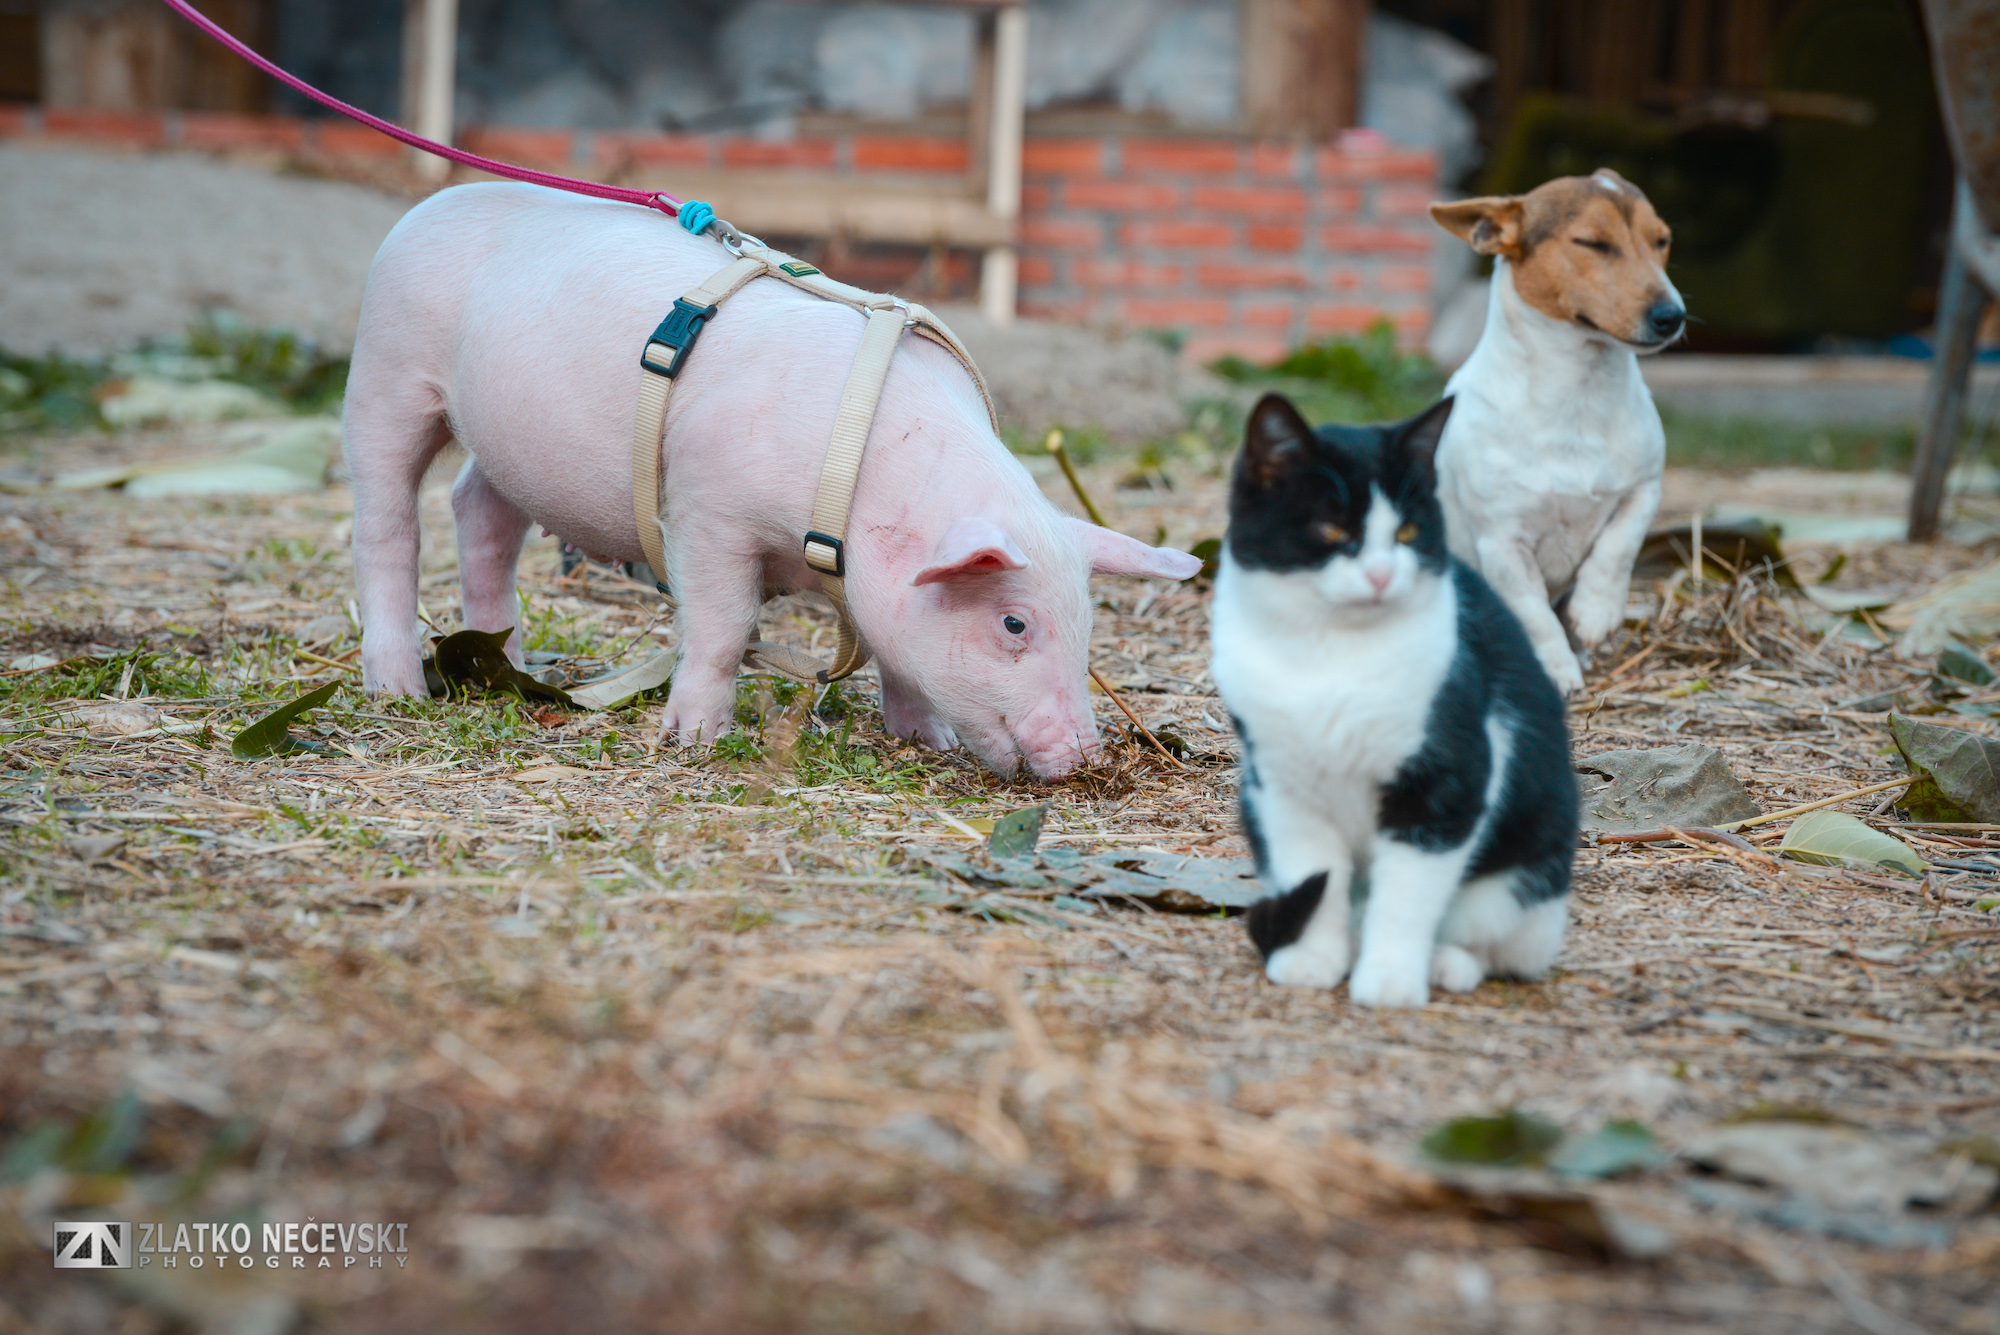 Piglet with a cat and dog